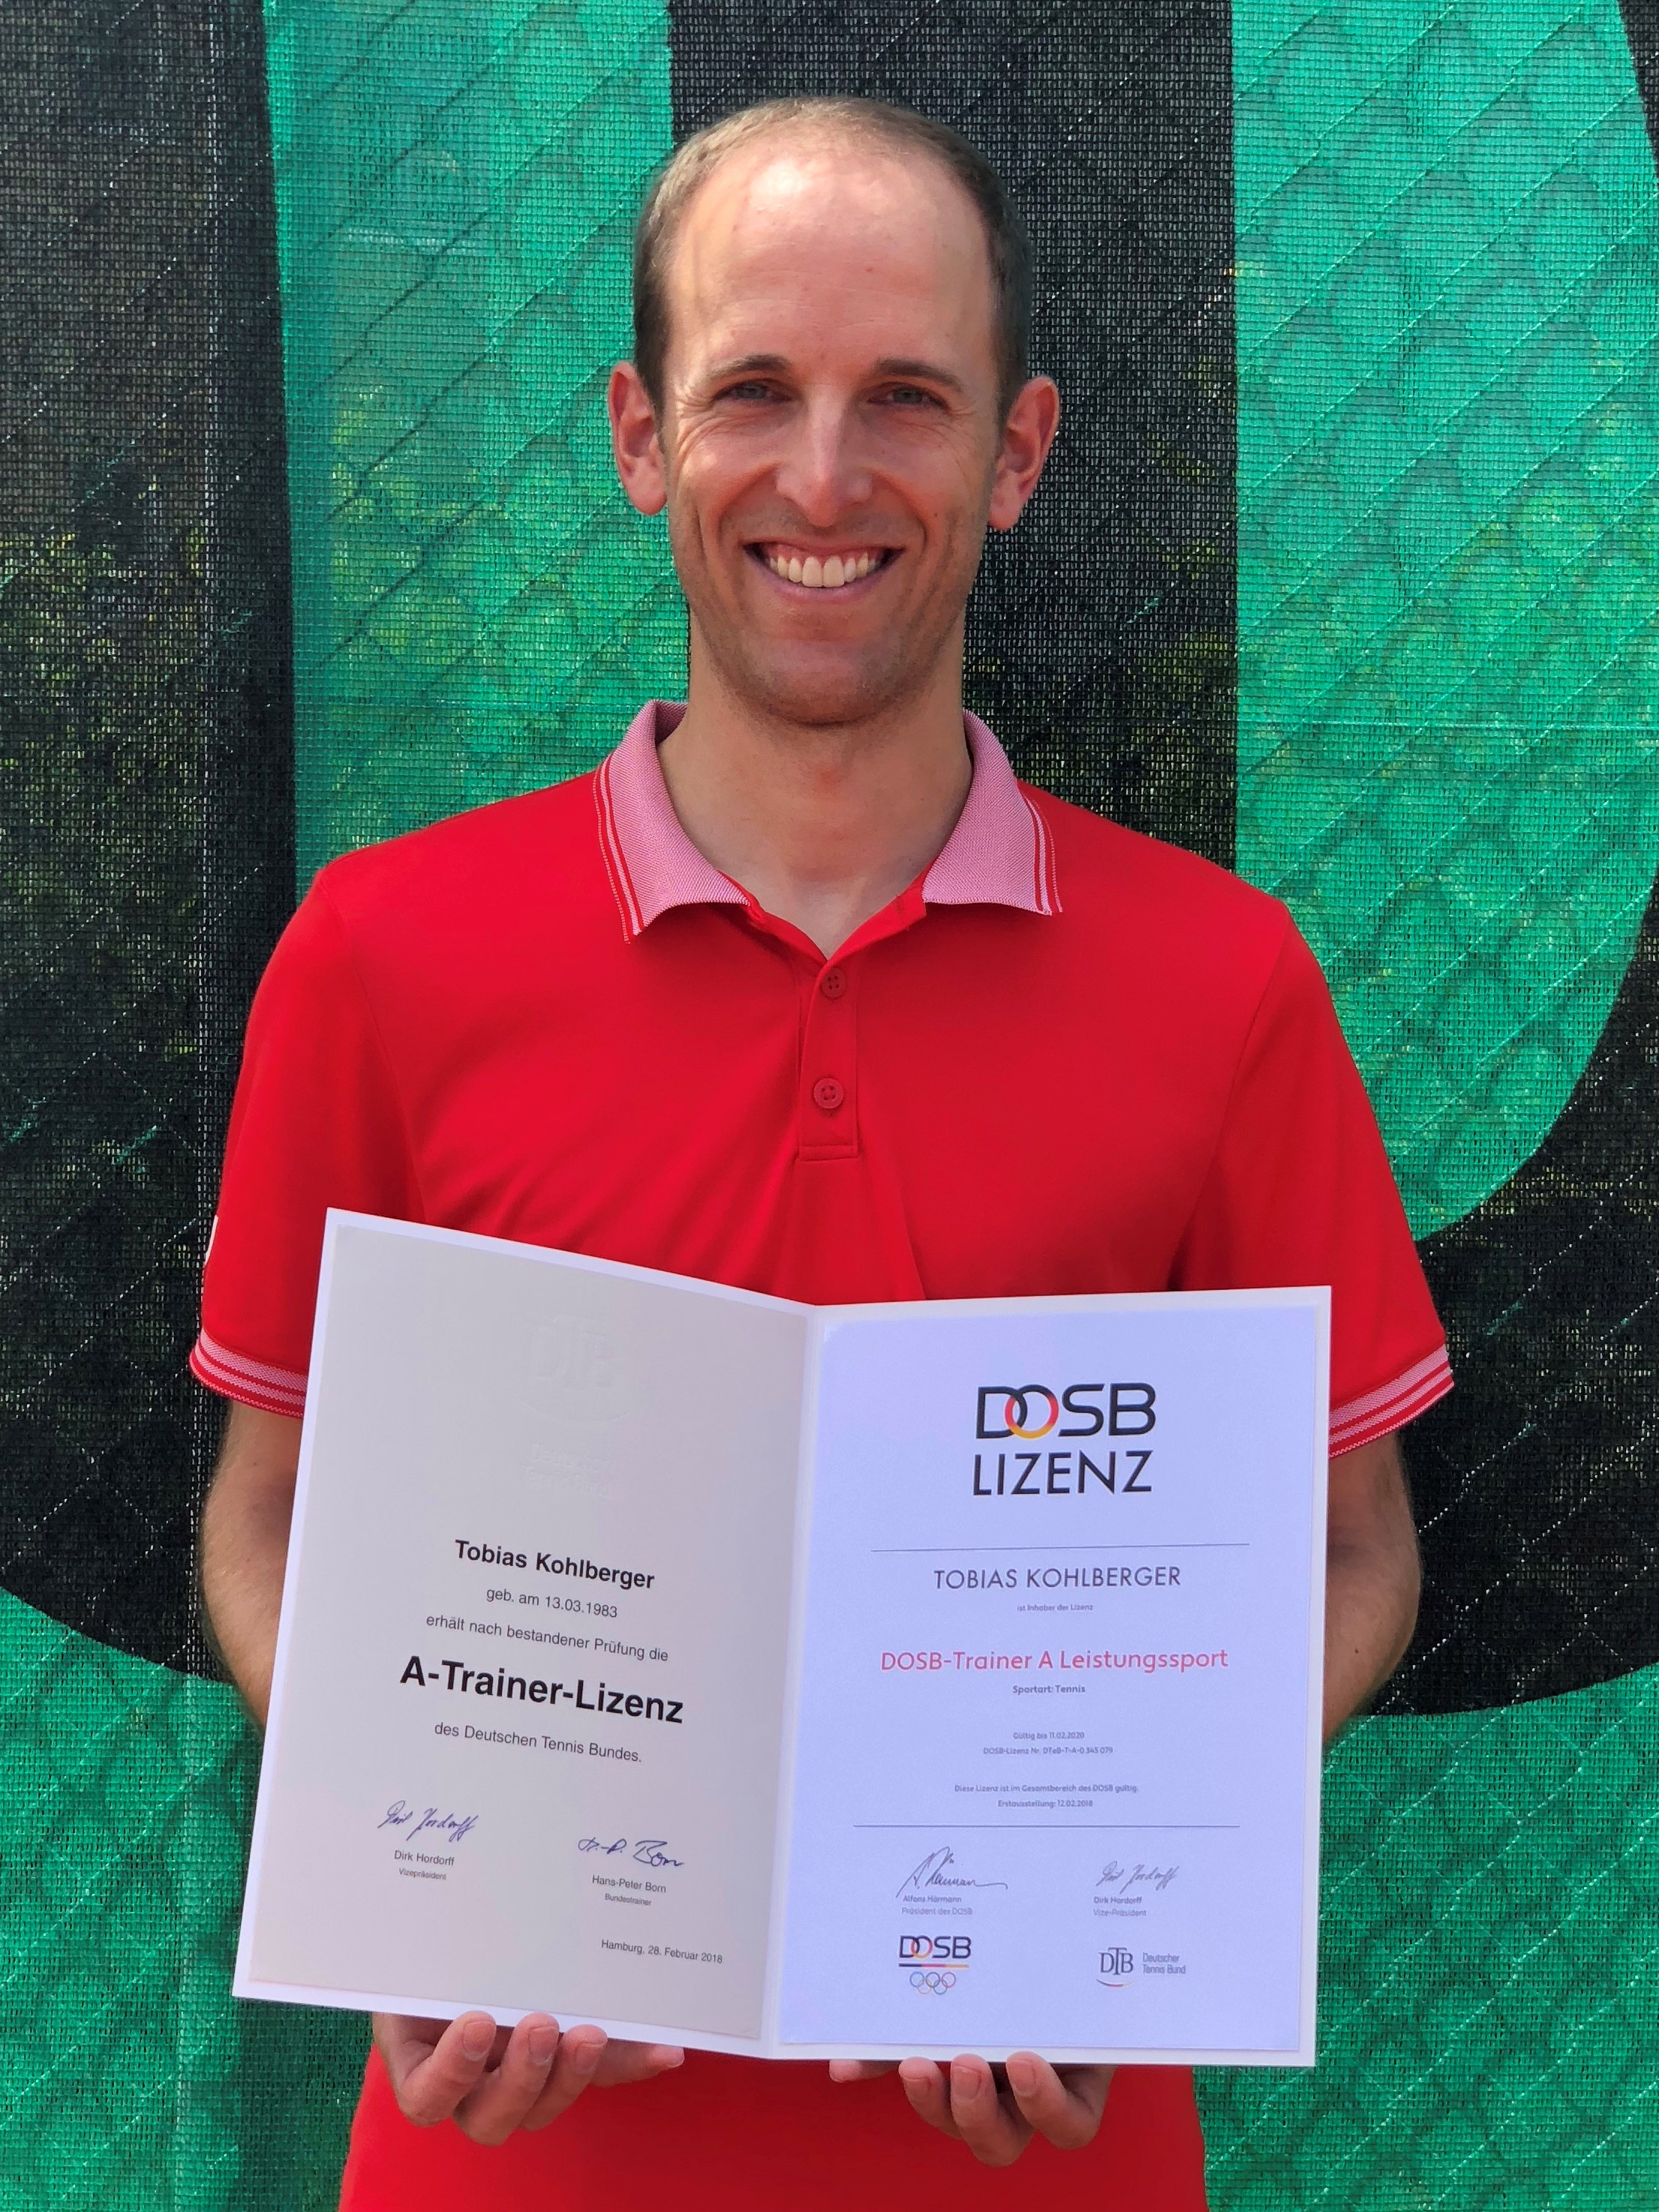 TCE-Cheftrainer Tobias Kohlberger ist DTB-A-Trainer